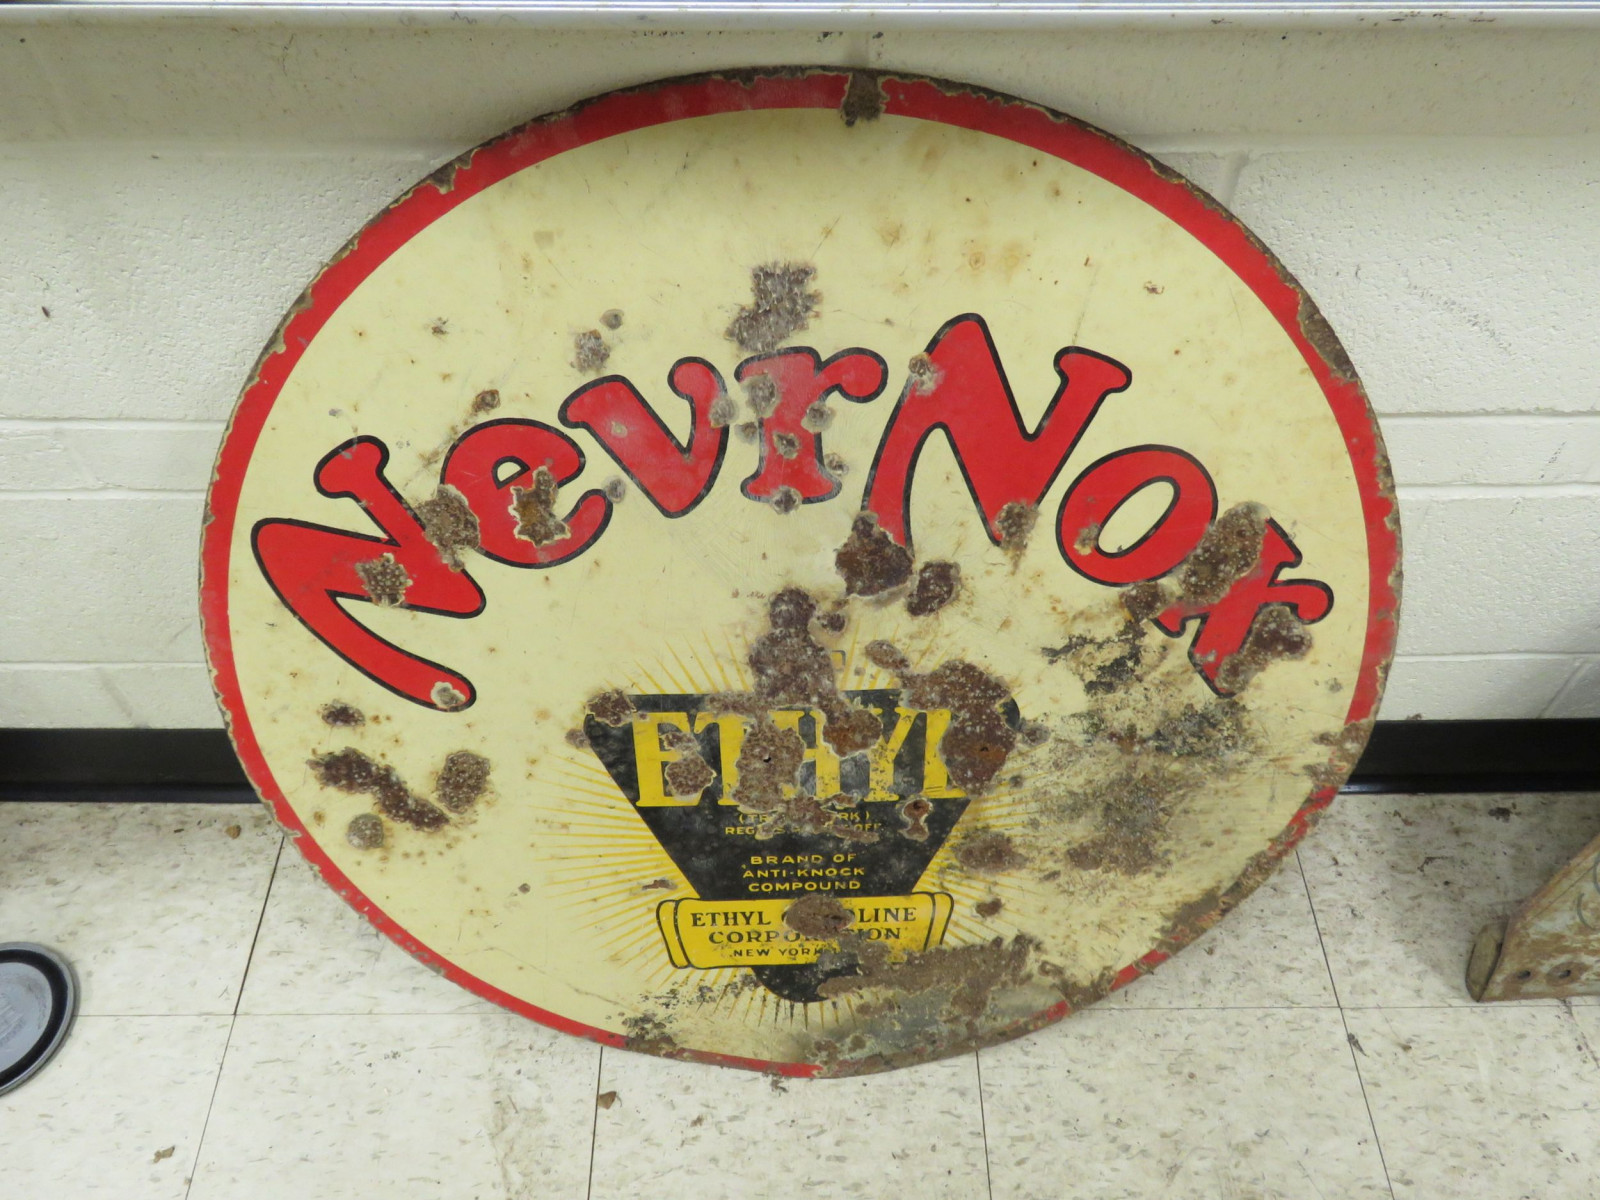 NevrNox Ethyl Porcelain Sign - Image 2